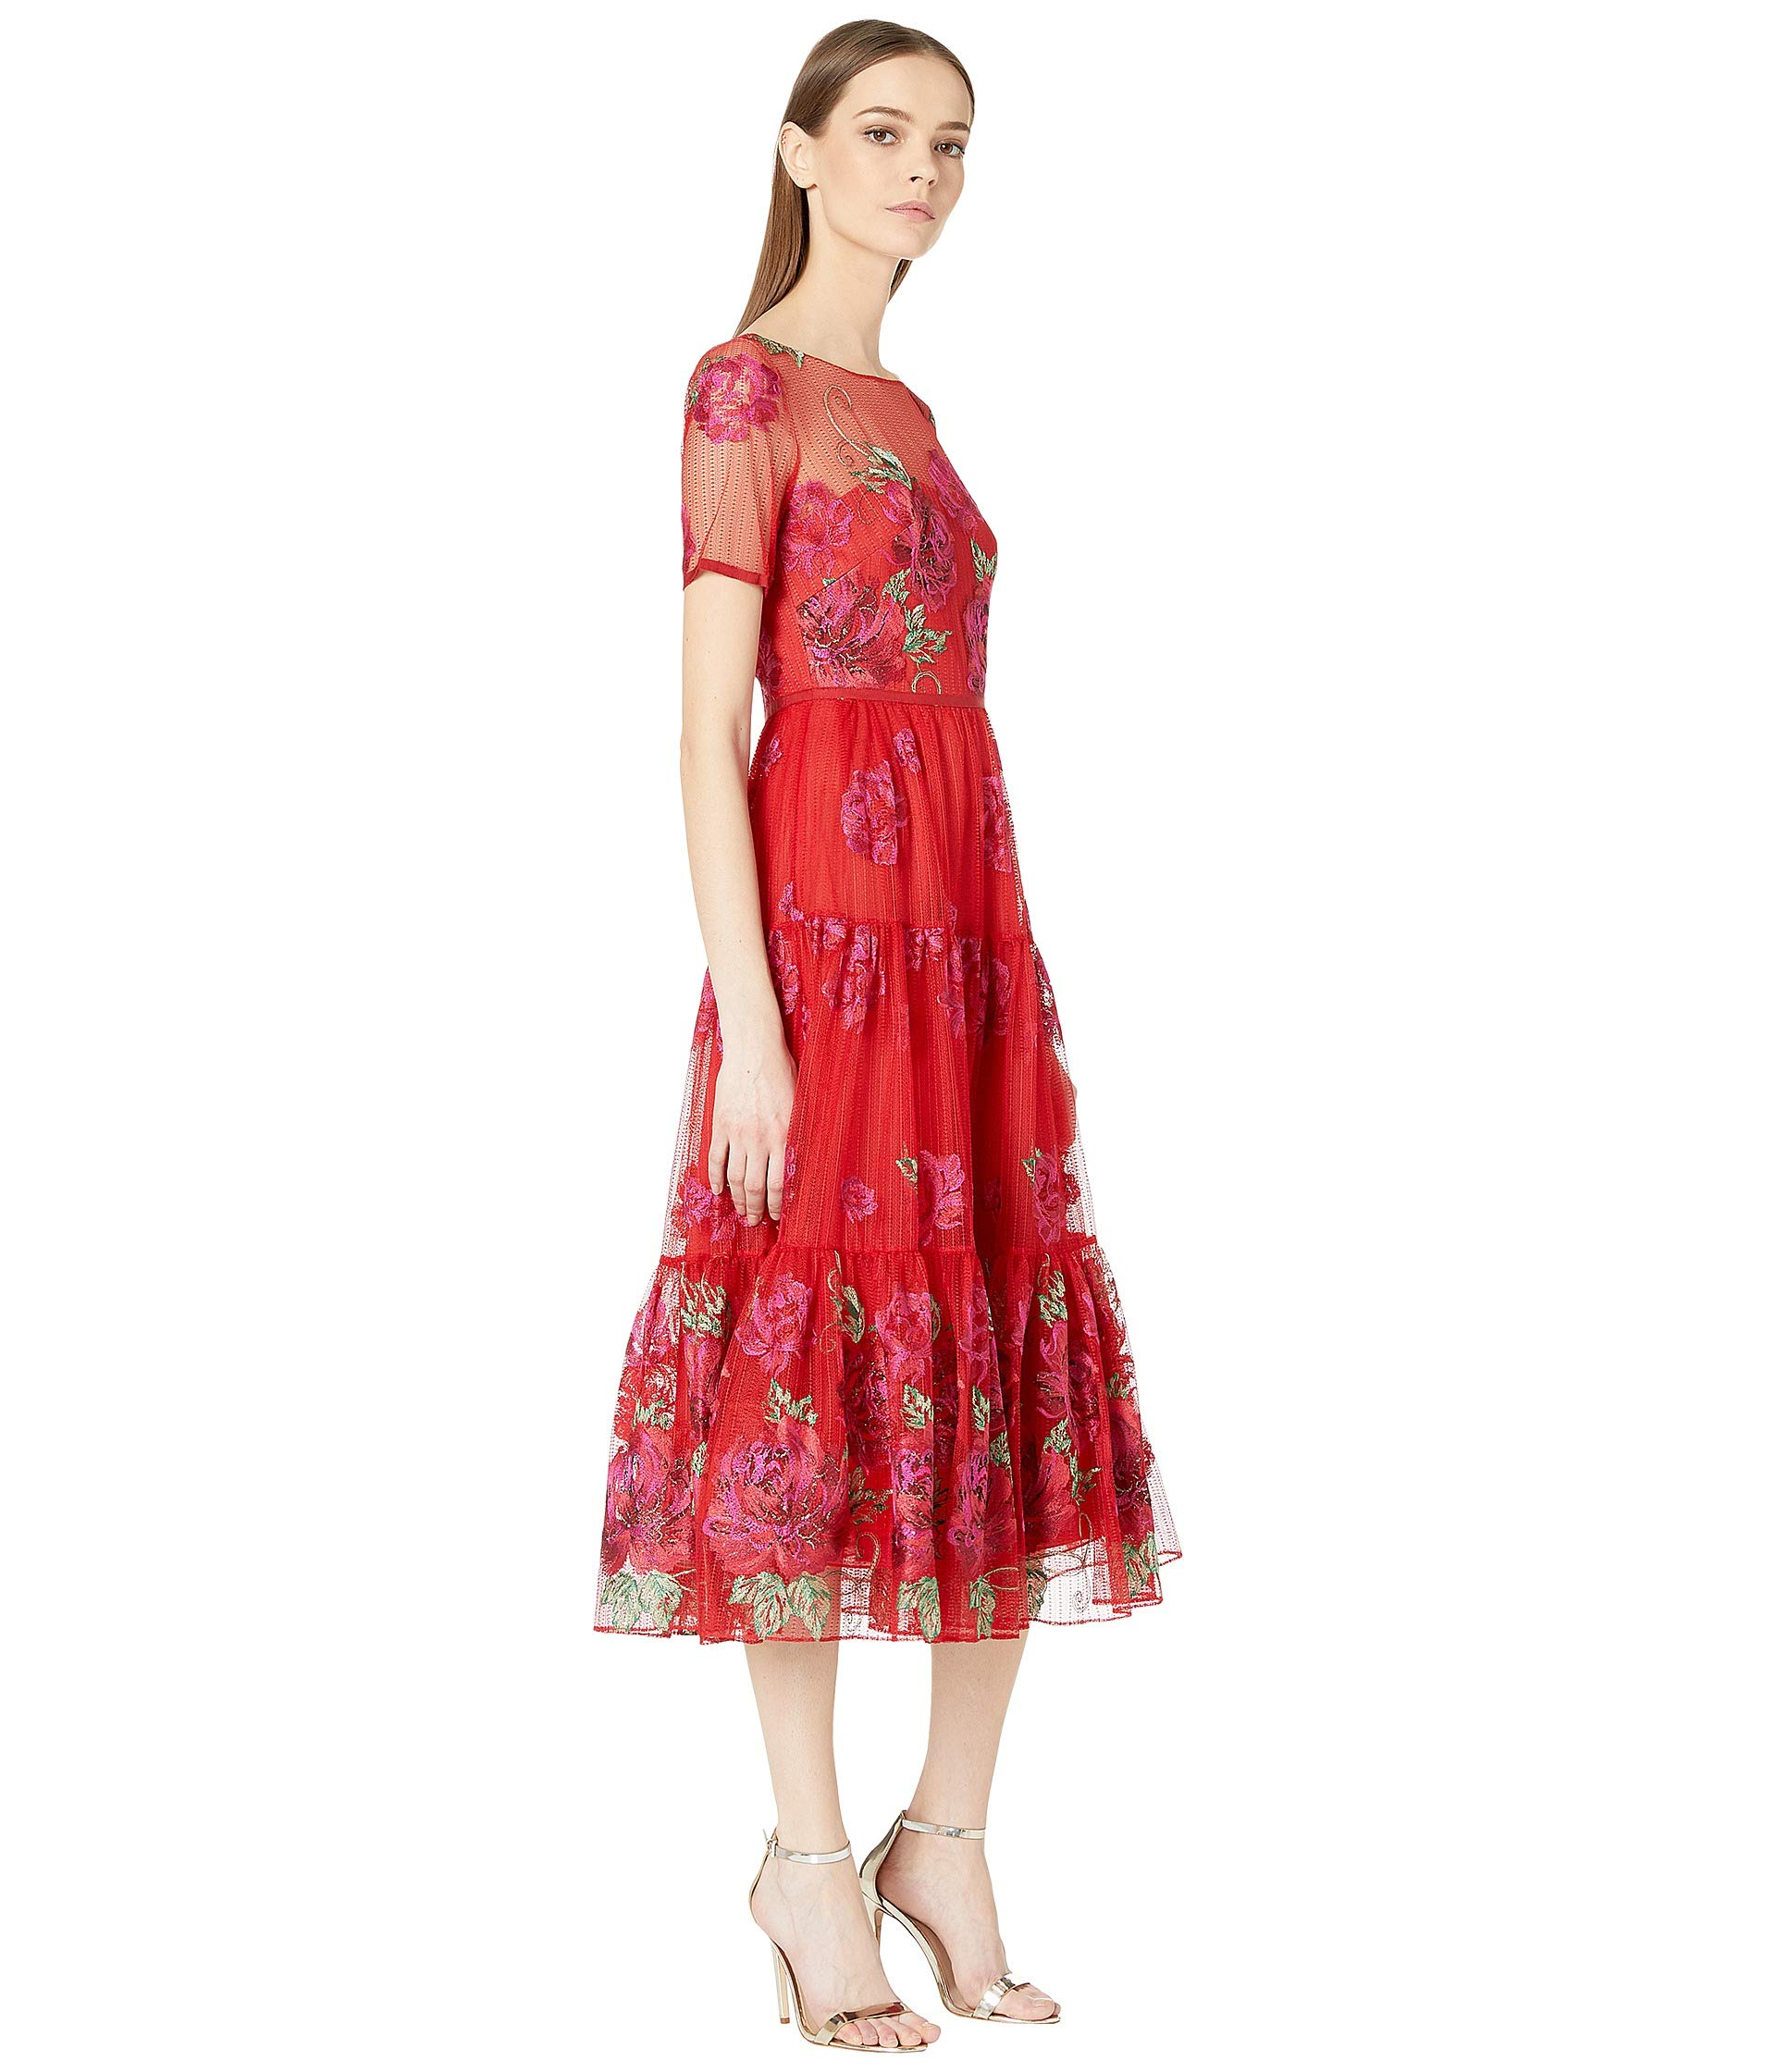 bdce93c5 Marchesa Notte Short Sleeve Floral Embroidered Tea-Length Gown with Trim